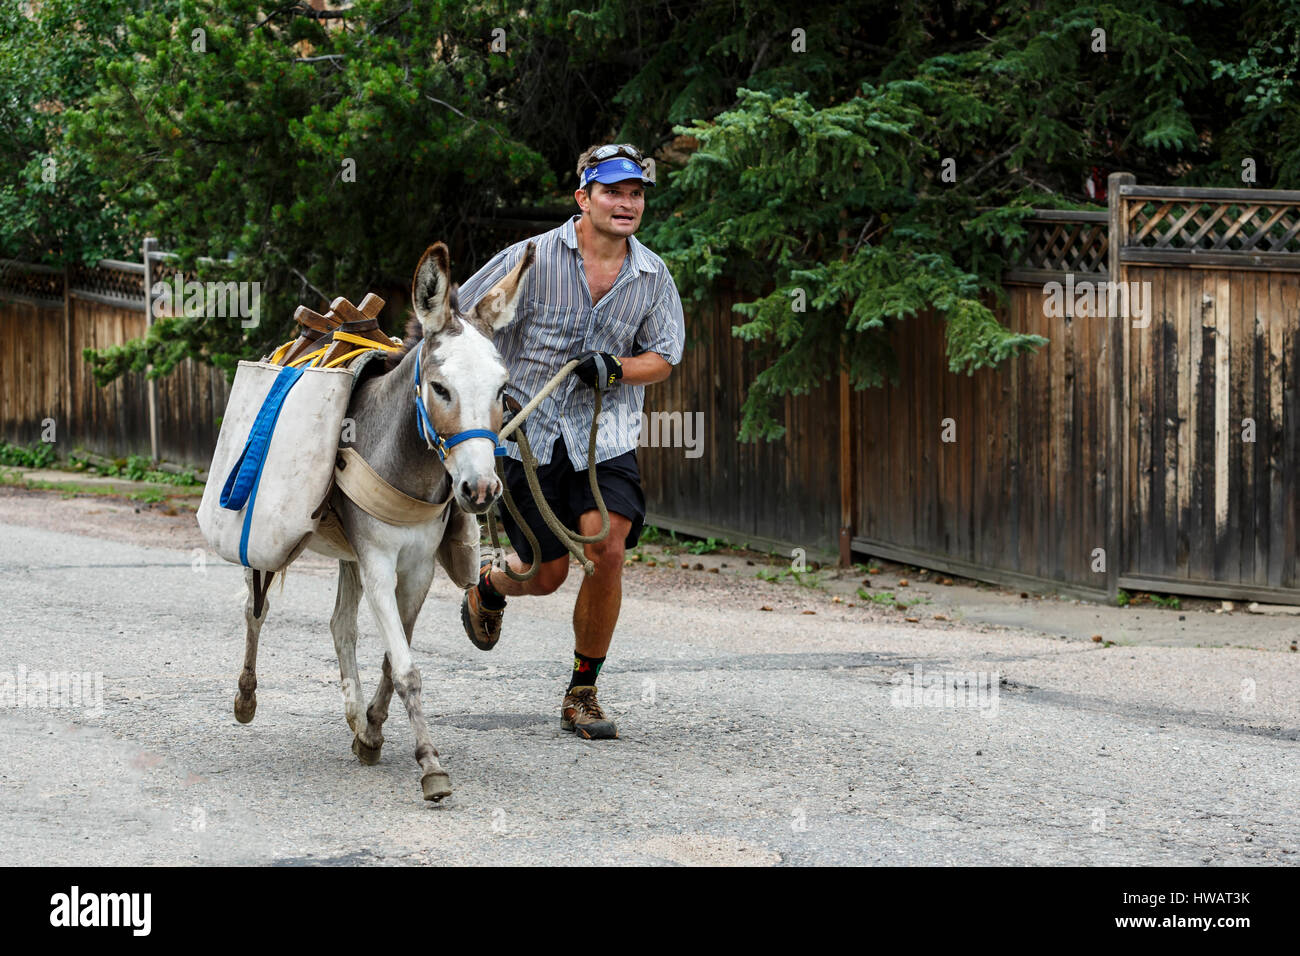 Runner and pack burro (donkey), Idaho Springs Tommyknockers Mining Days Festival and Pack Burro Race, Idaho Springs, - Stock Image